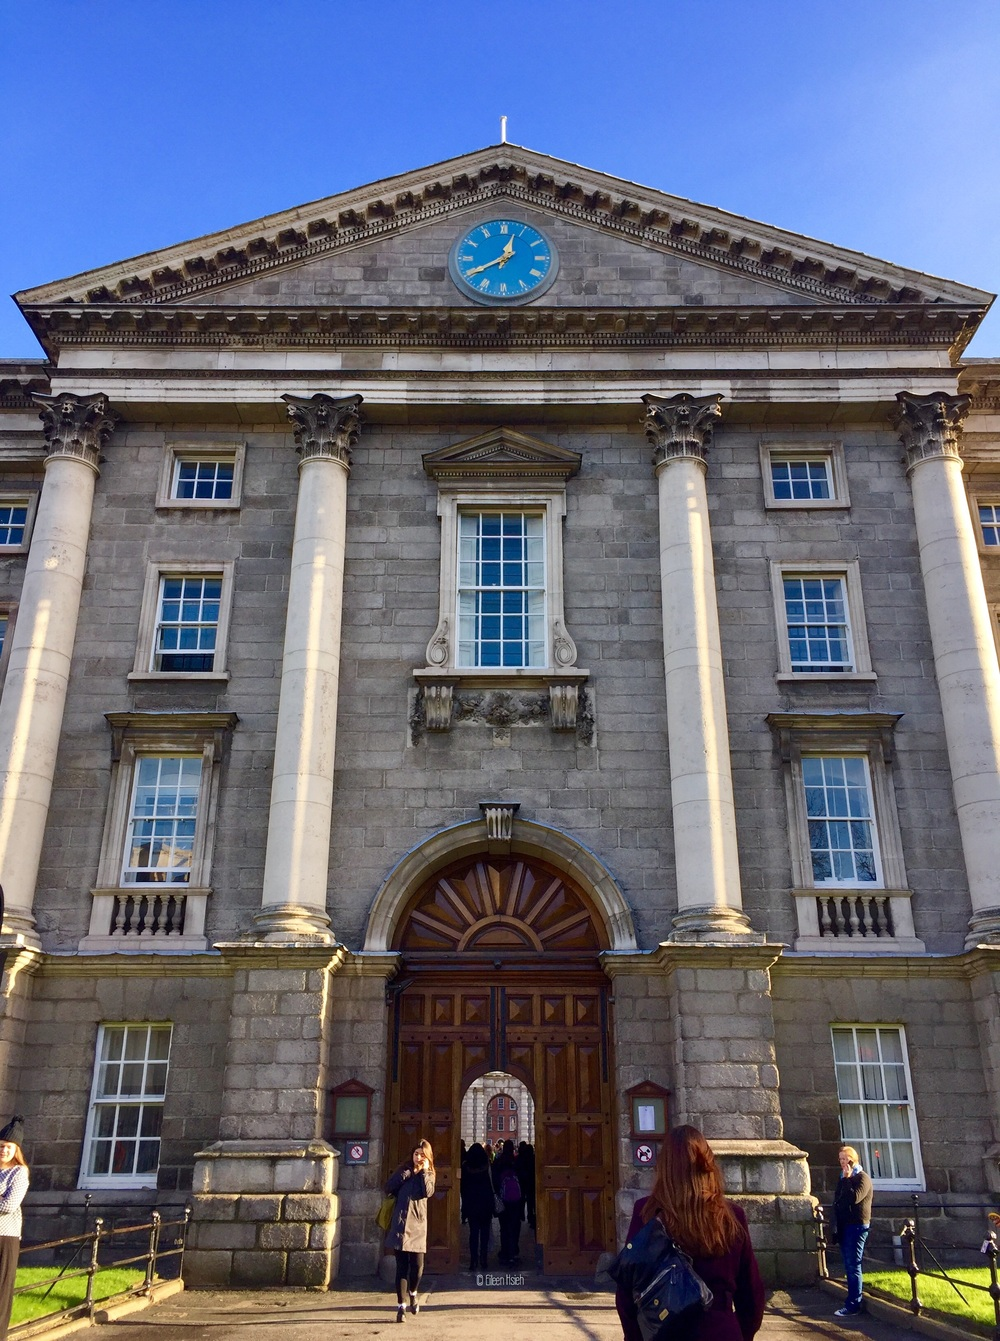 The main entrance of Trinity College Dublin.